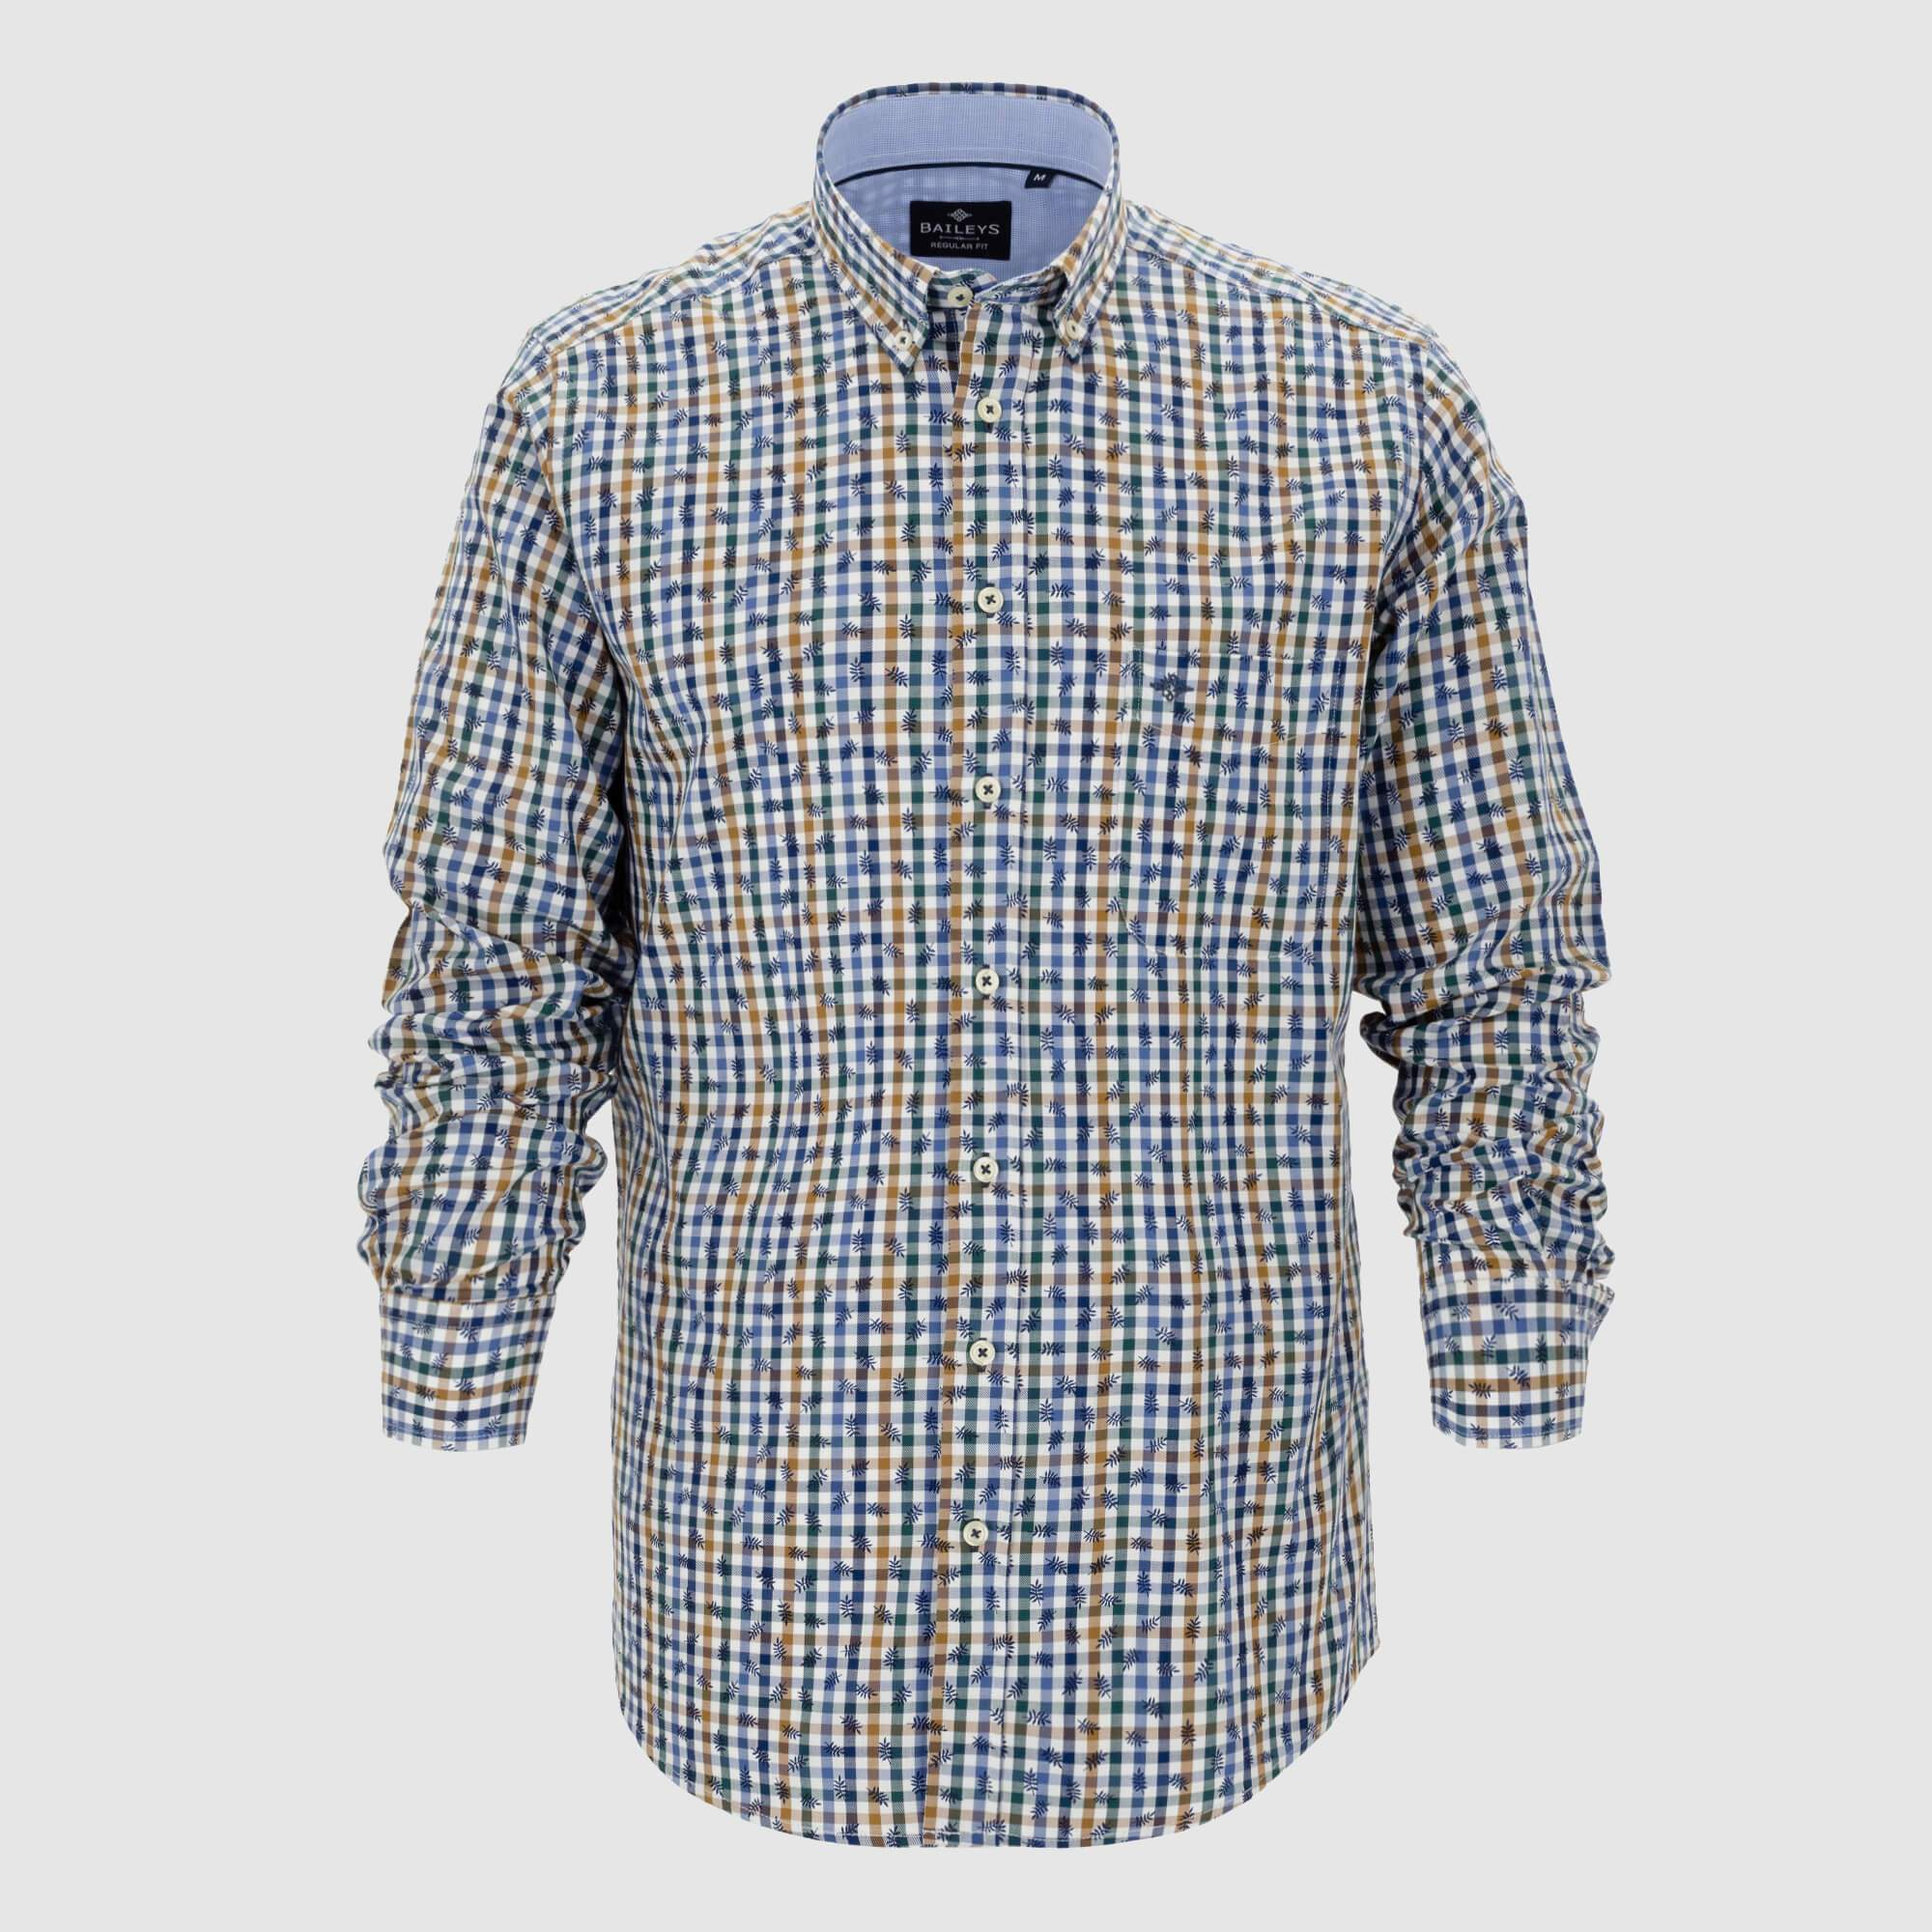 Camisa de cuadros corte regular fit 927694